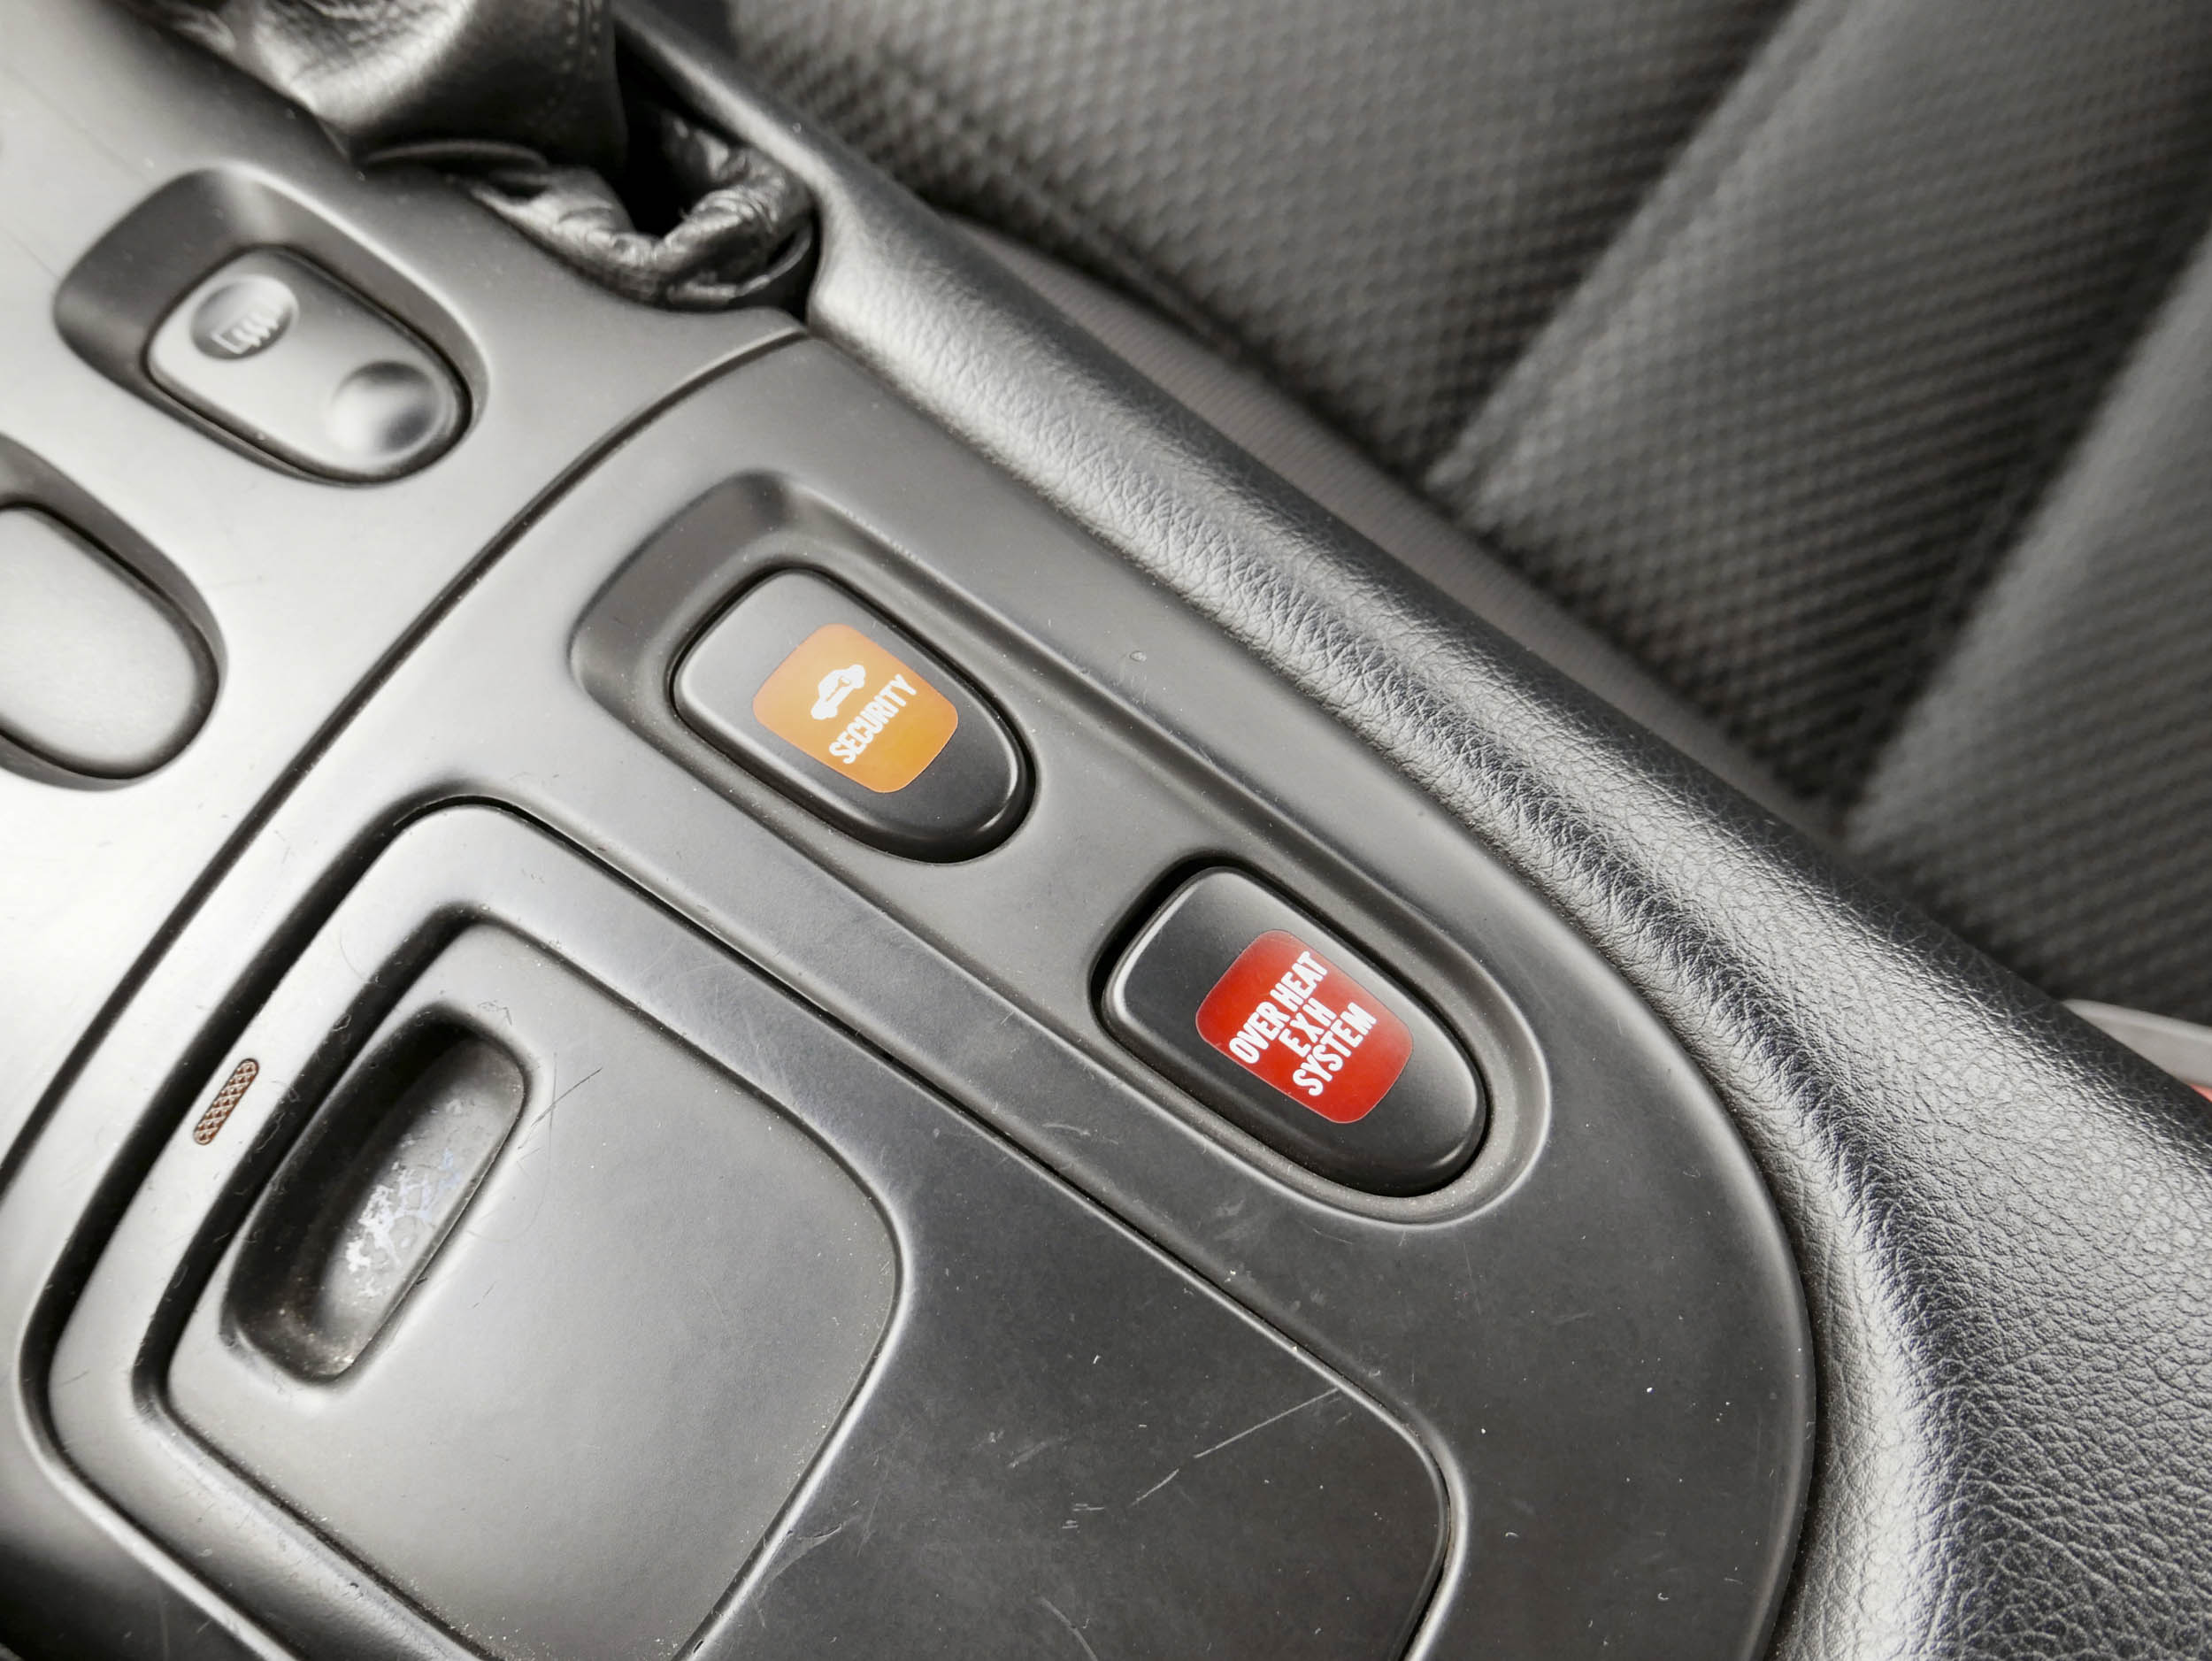 Mazda RX-7 security and overheat buttons